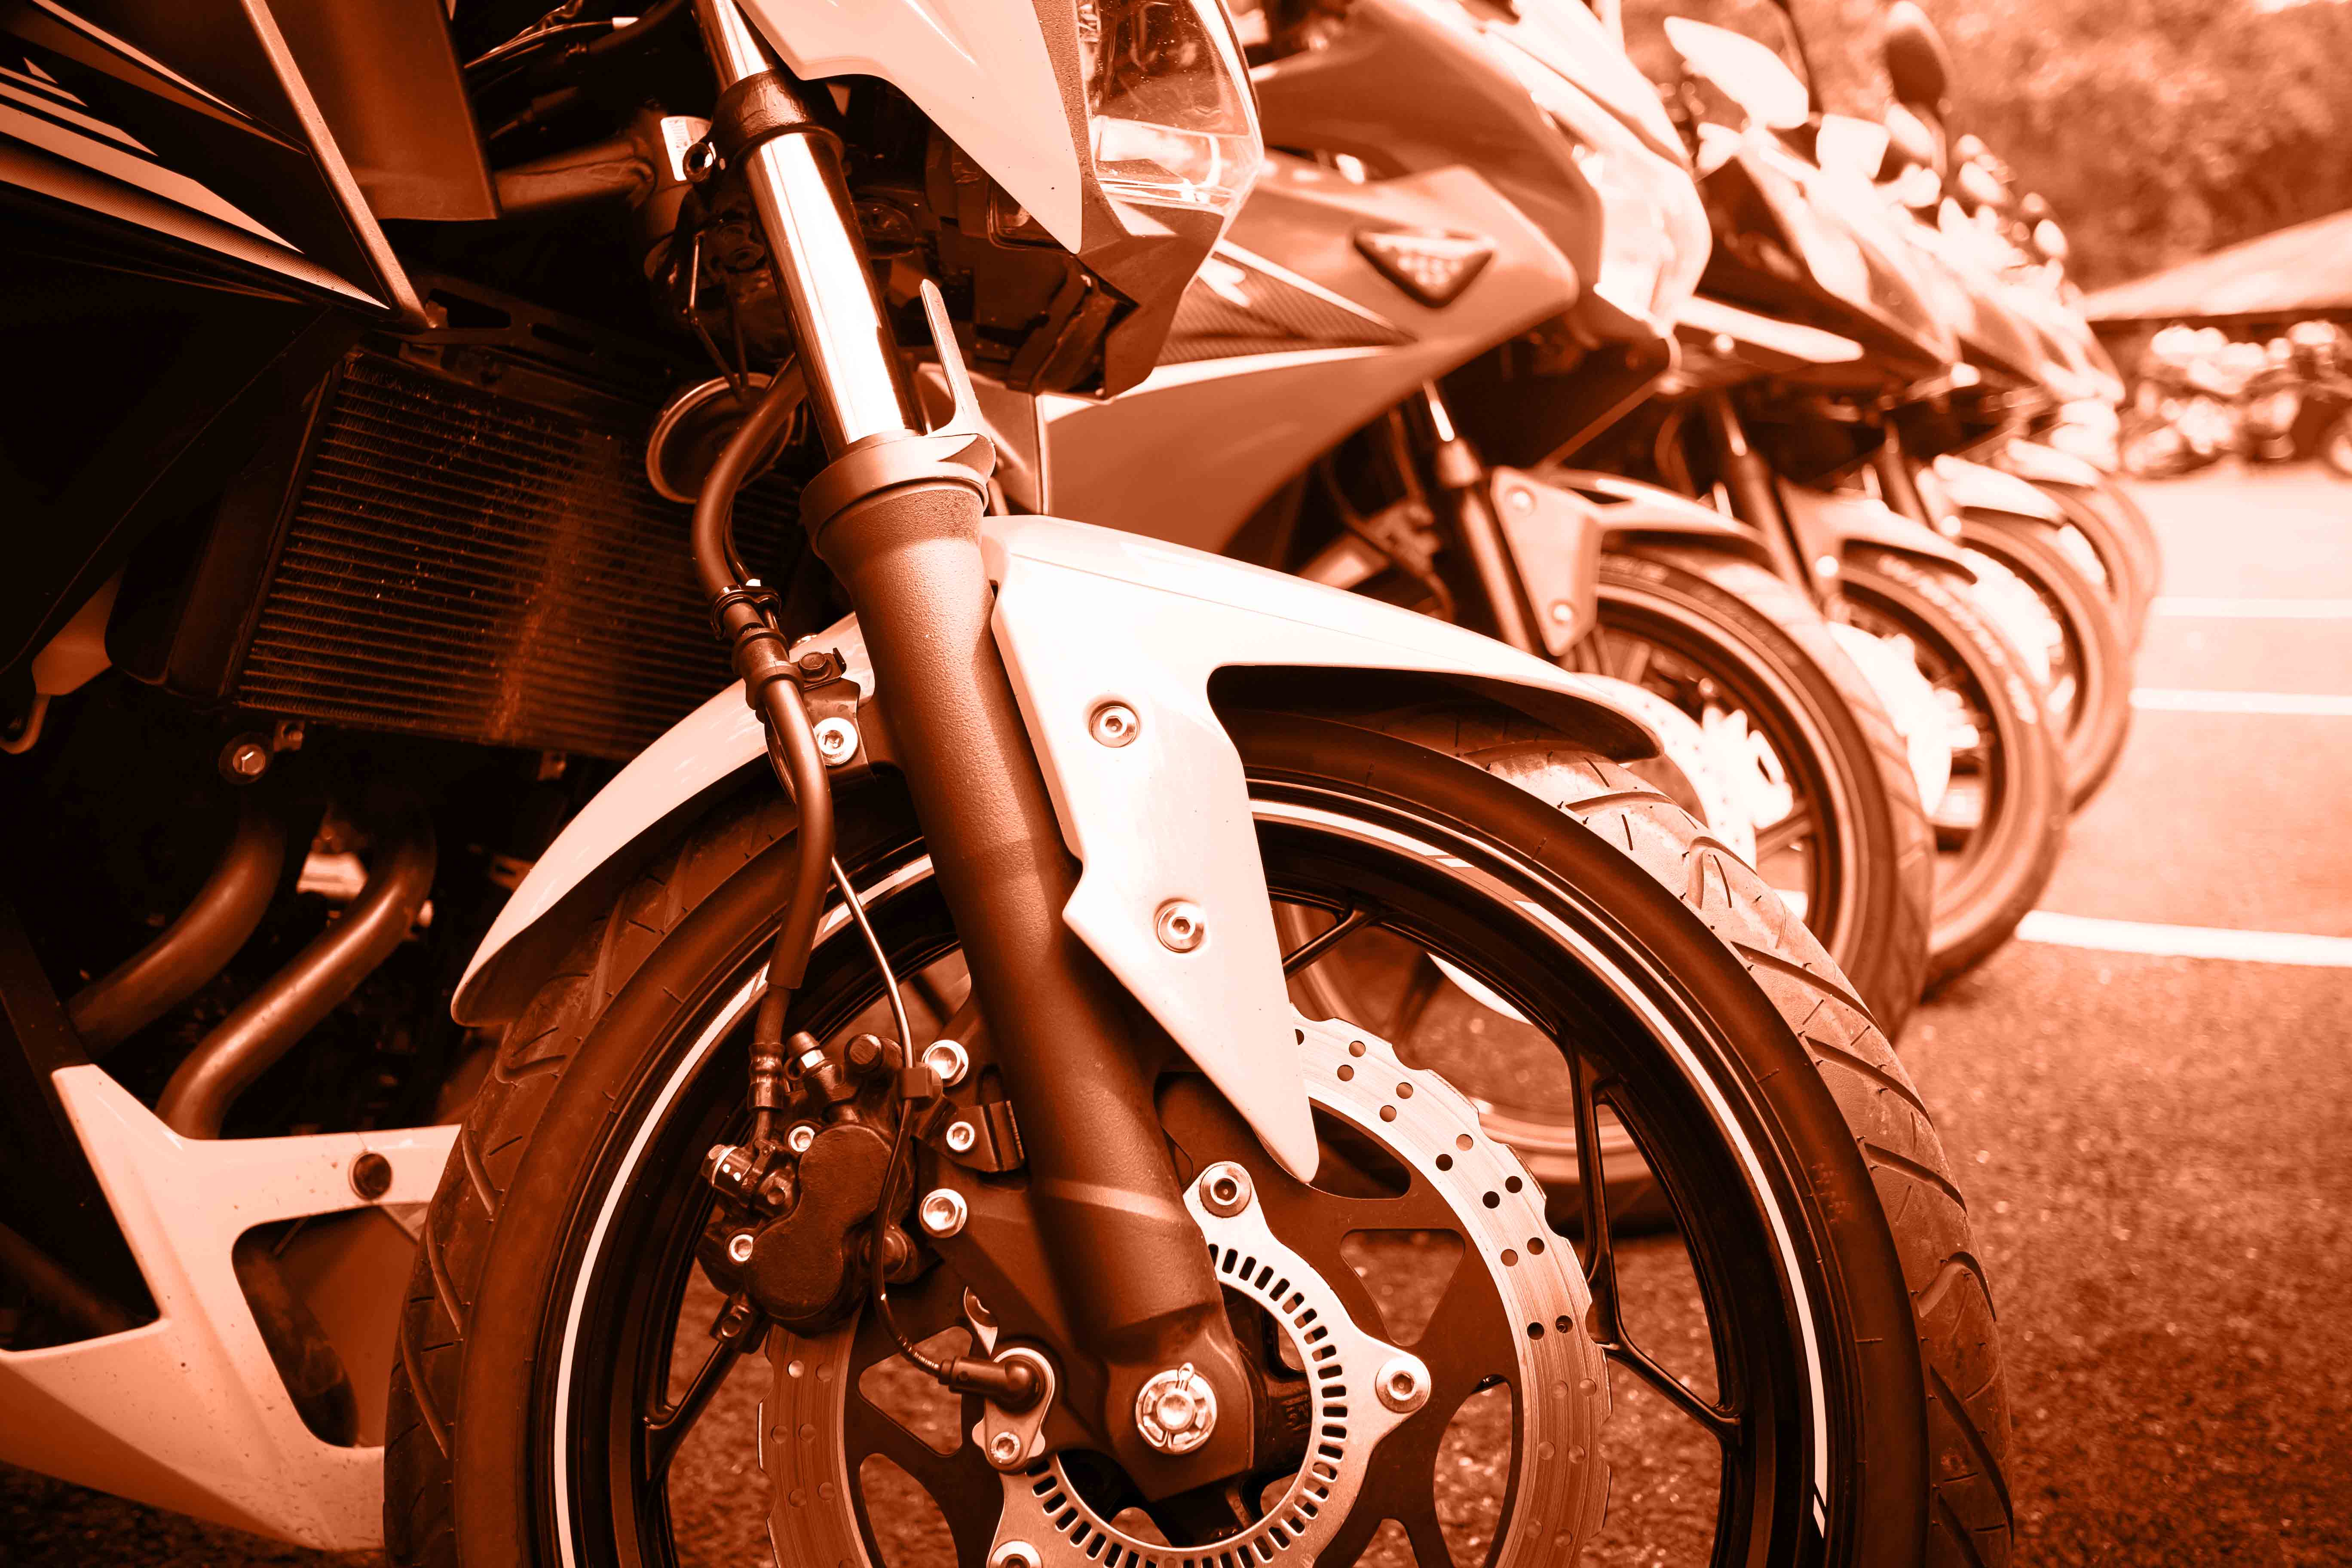 Motorcycle Wiring Harness Manufacturers Schematic Diagrams Kits Wire For Charng Hardware Kit